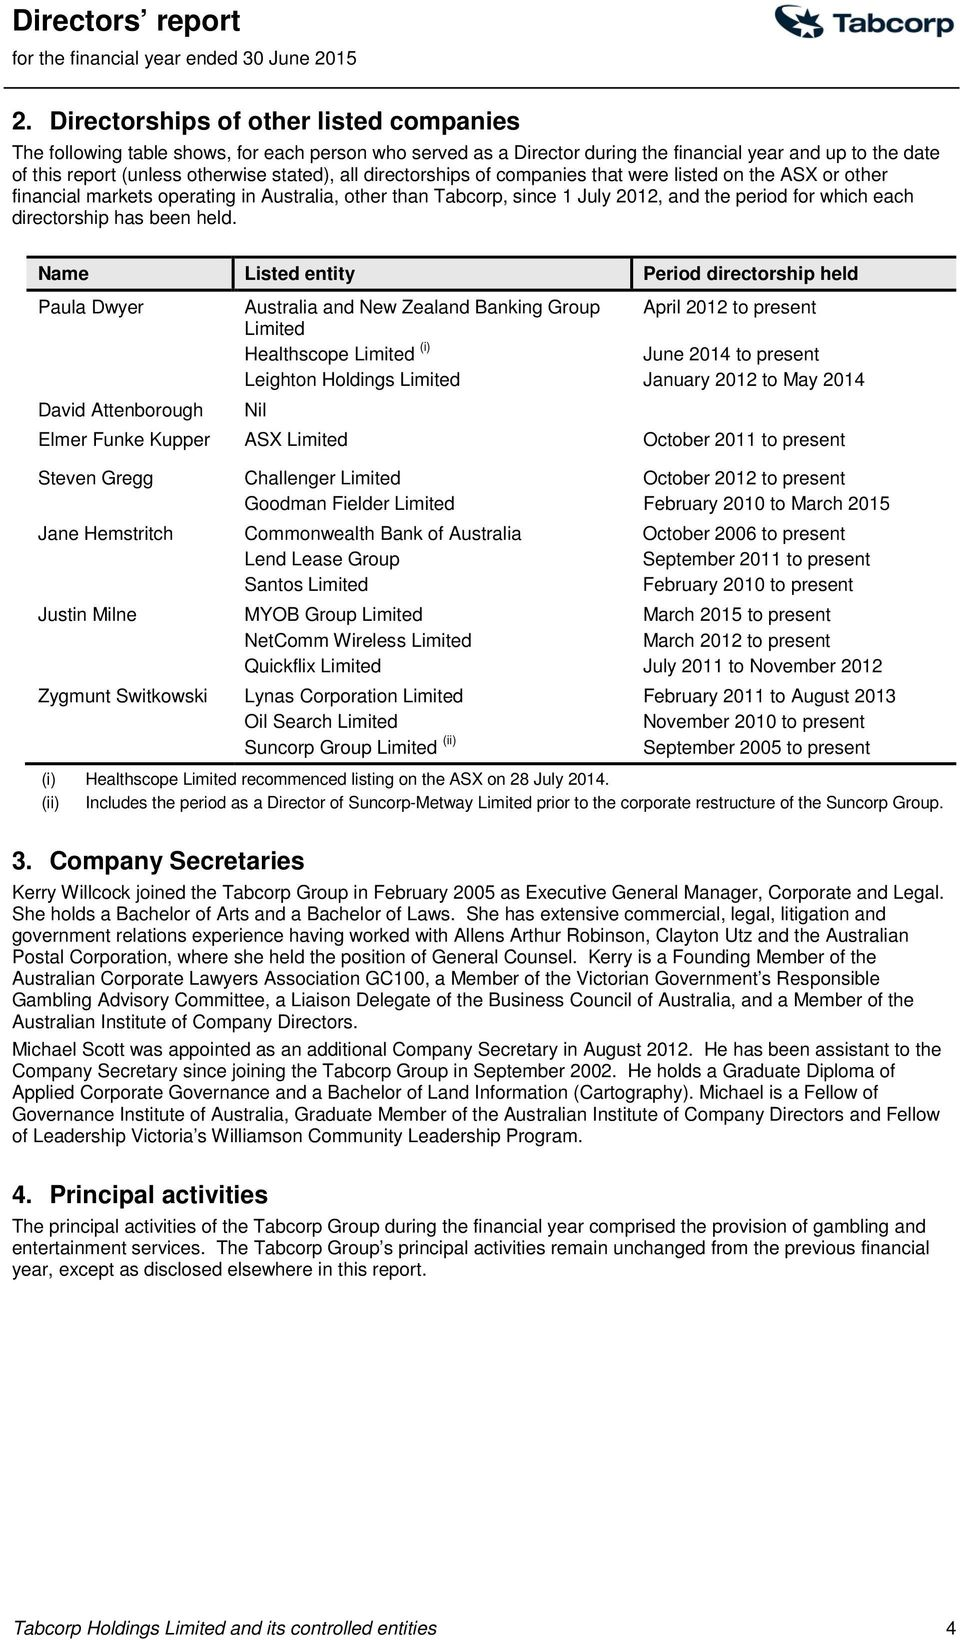 directorships of companies that were listed on the ASX or other financial markets operating in Australia, other than Tabcorp, since 1 July 2012, and the period for which each directorship has been